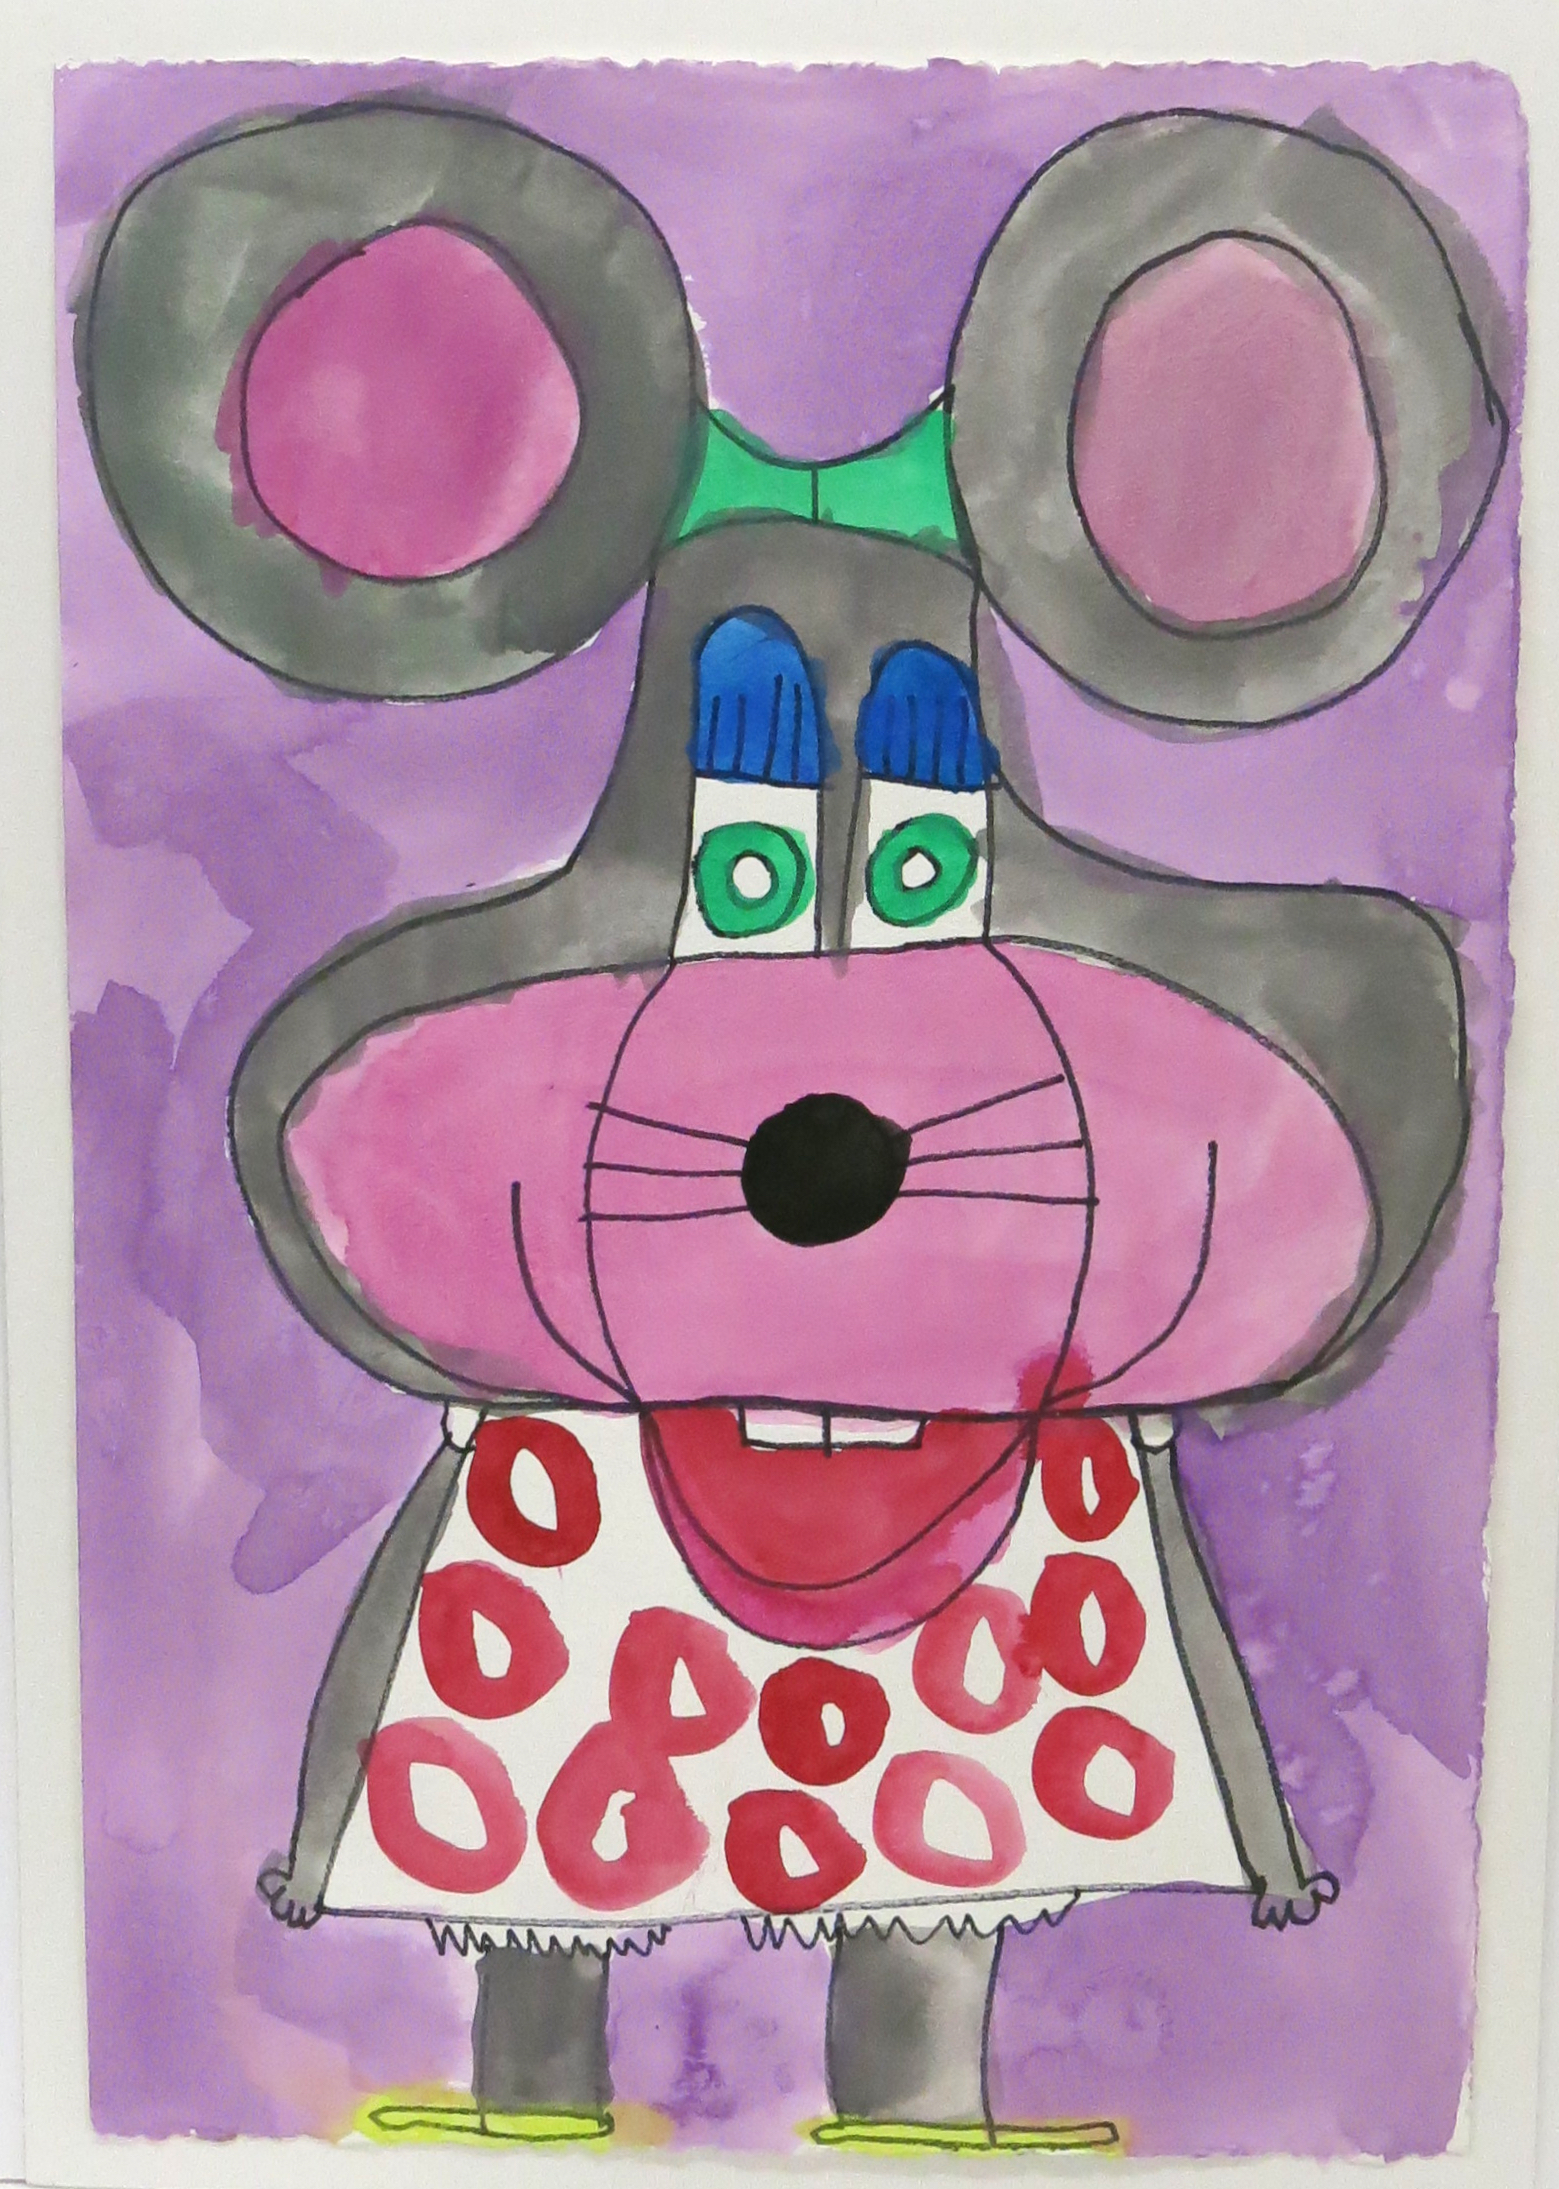 Jay Daley, Untitled (JD 064), 2015, Work on paper, 15 x 22 inches